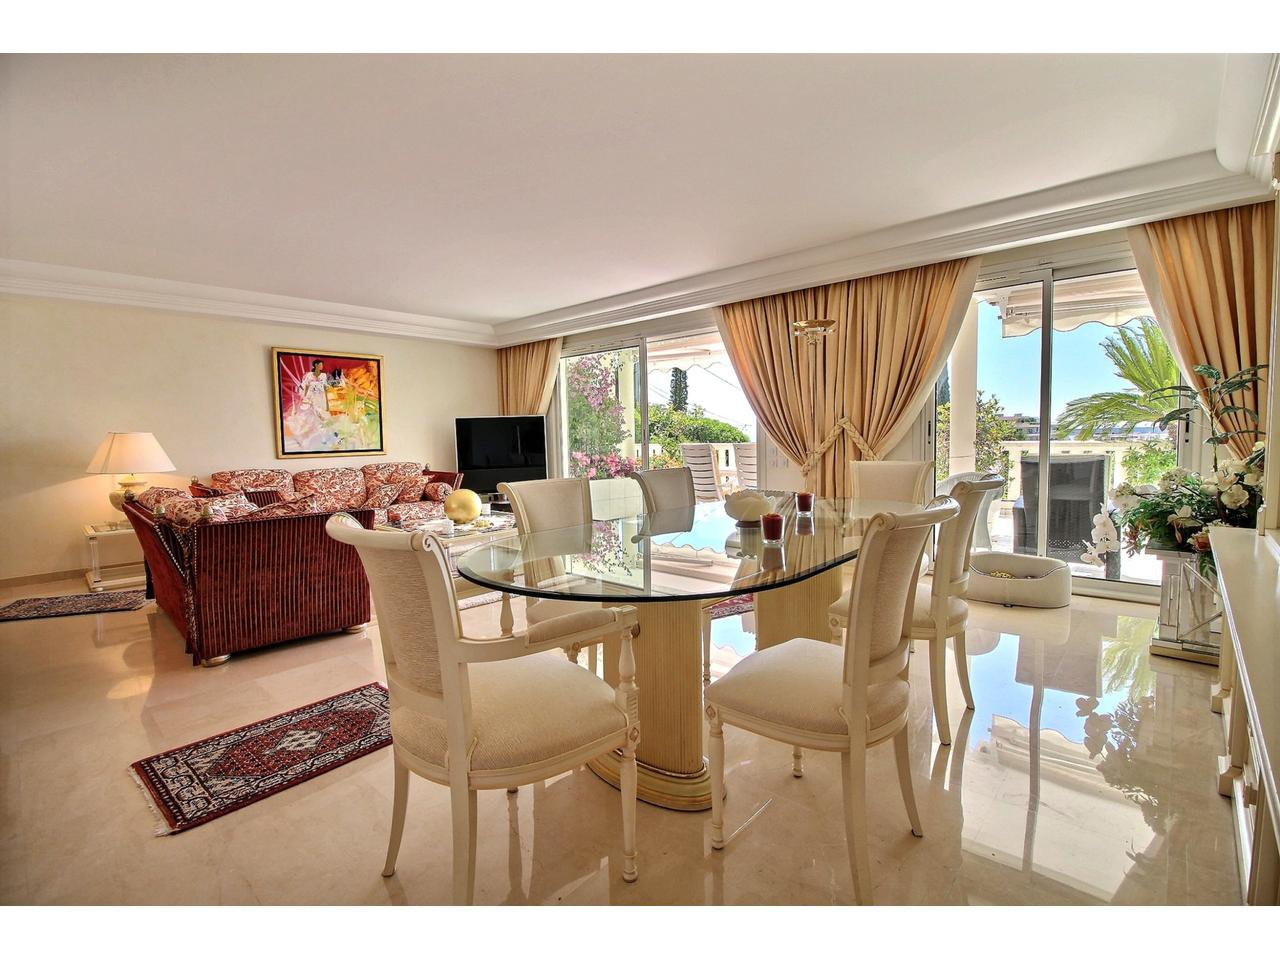 5 bedroom apartment for sale in Cannes Basse Califofrnie